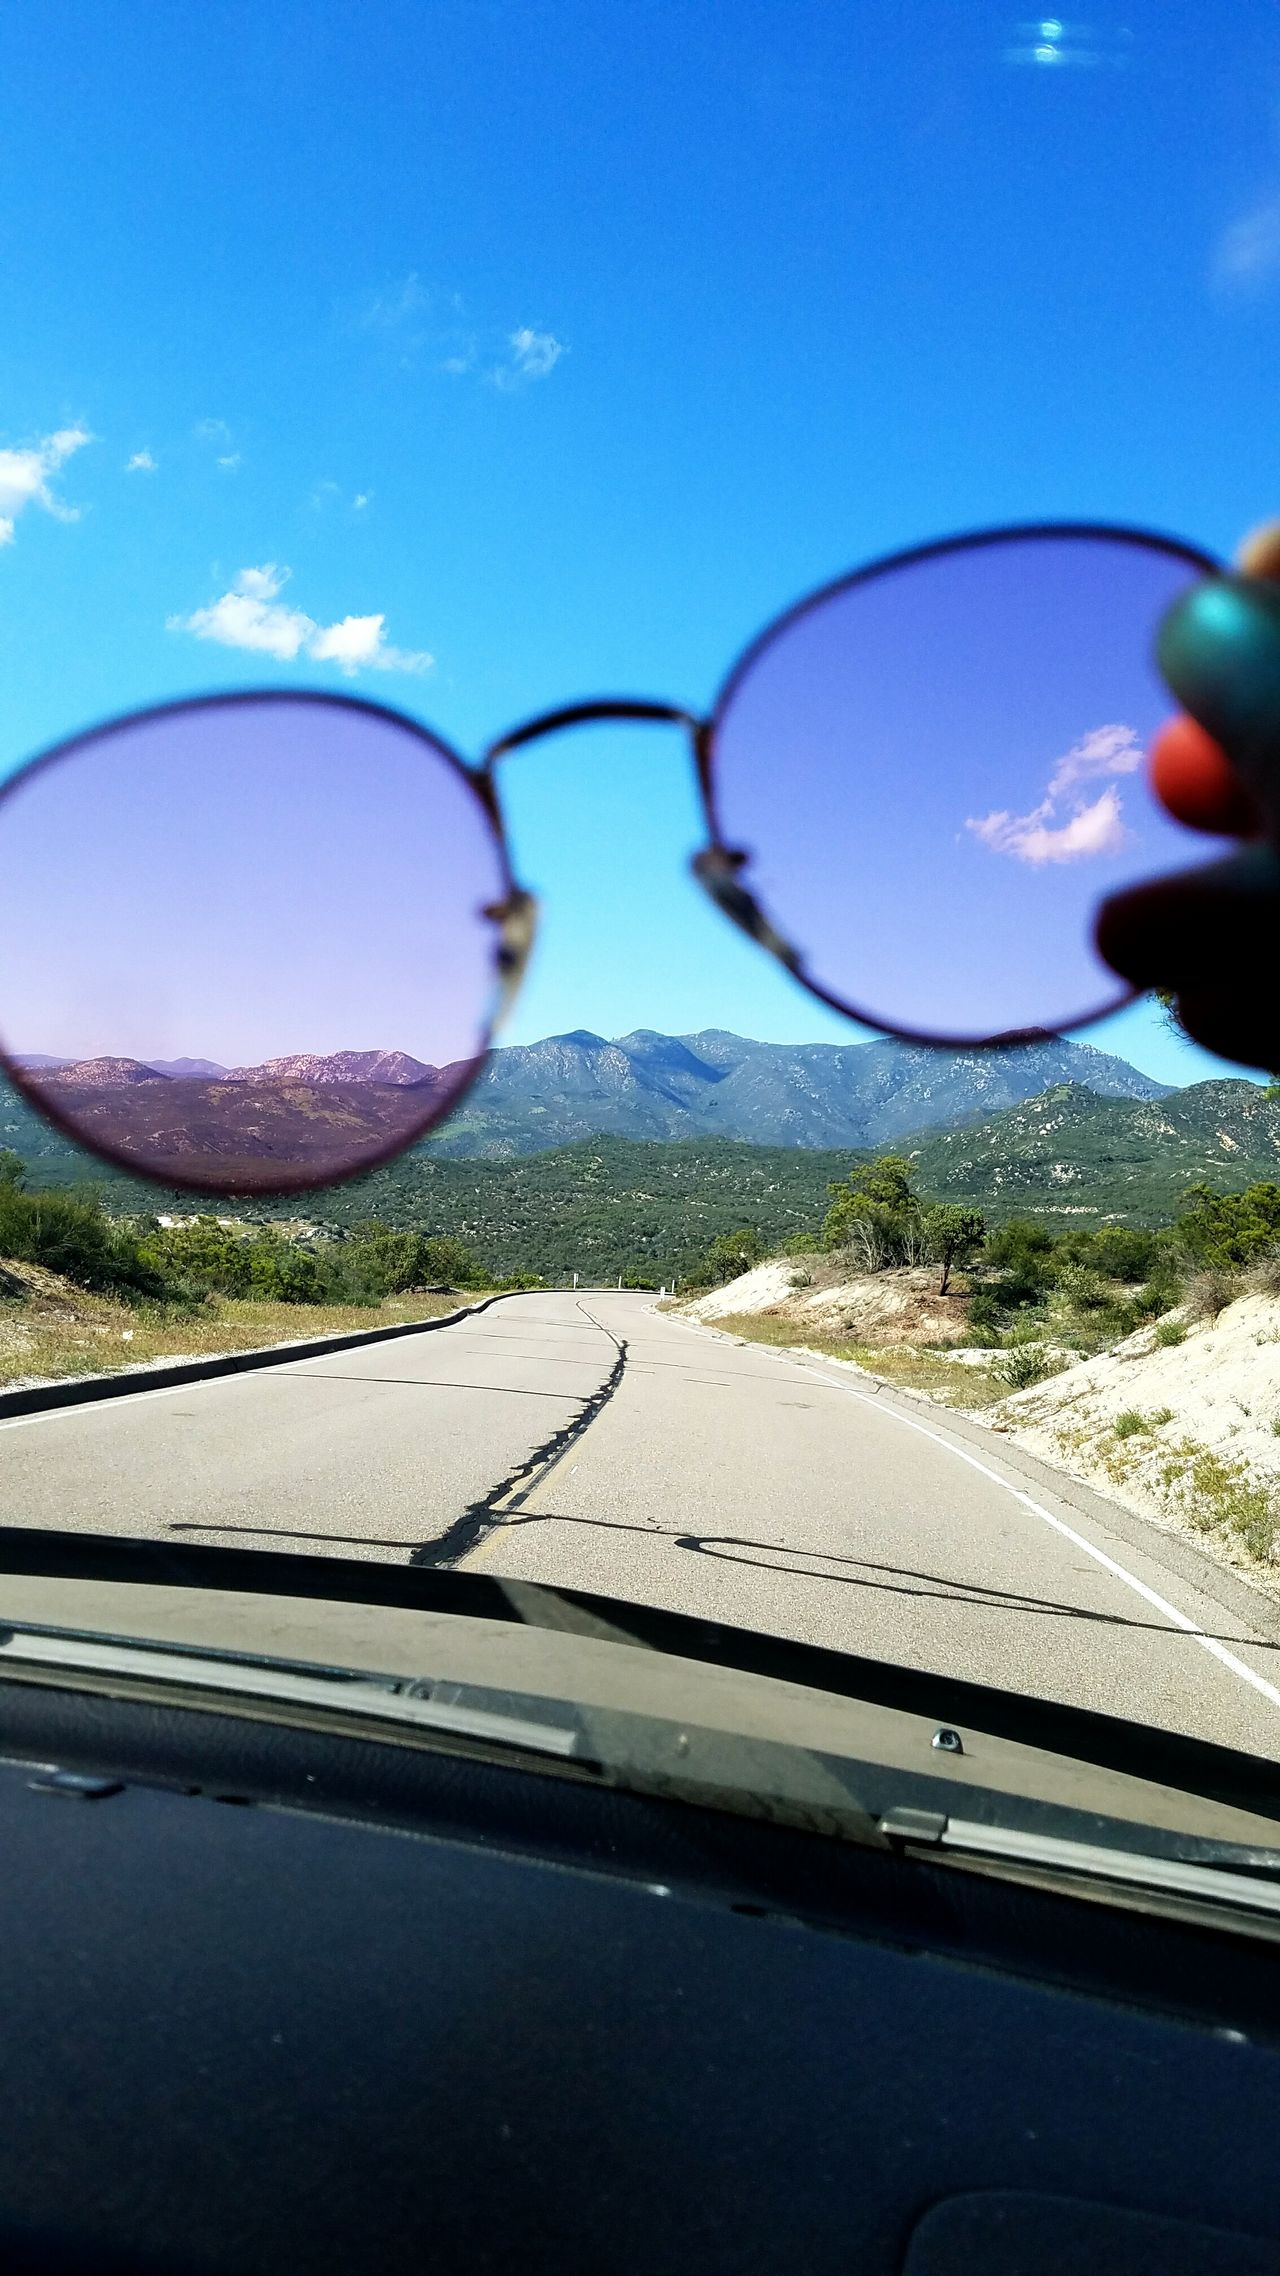 Nature Road Day Sky Car Sun Sunglasses Pink Rosy Rose Colored Glasses Driving Mountain Ramona California Travel Millennial Pink Live For The Story